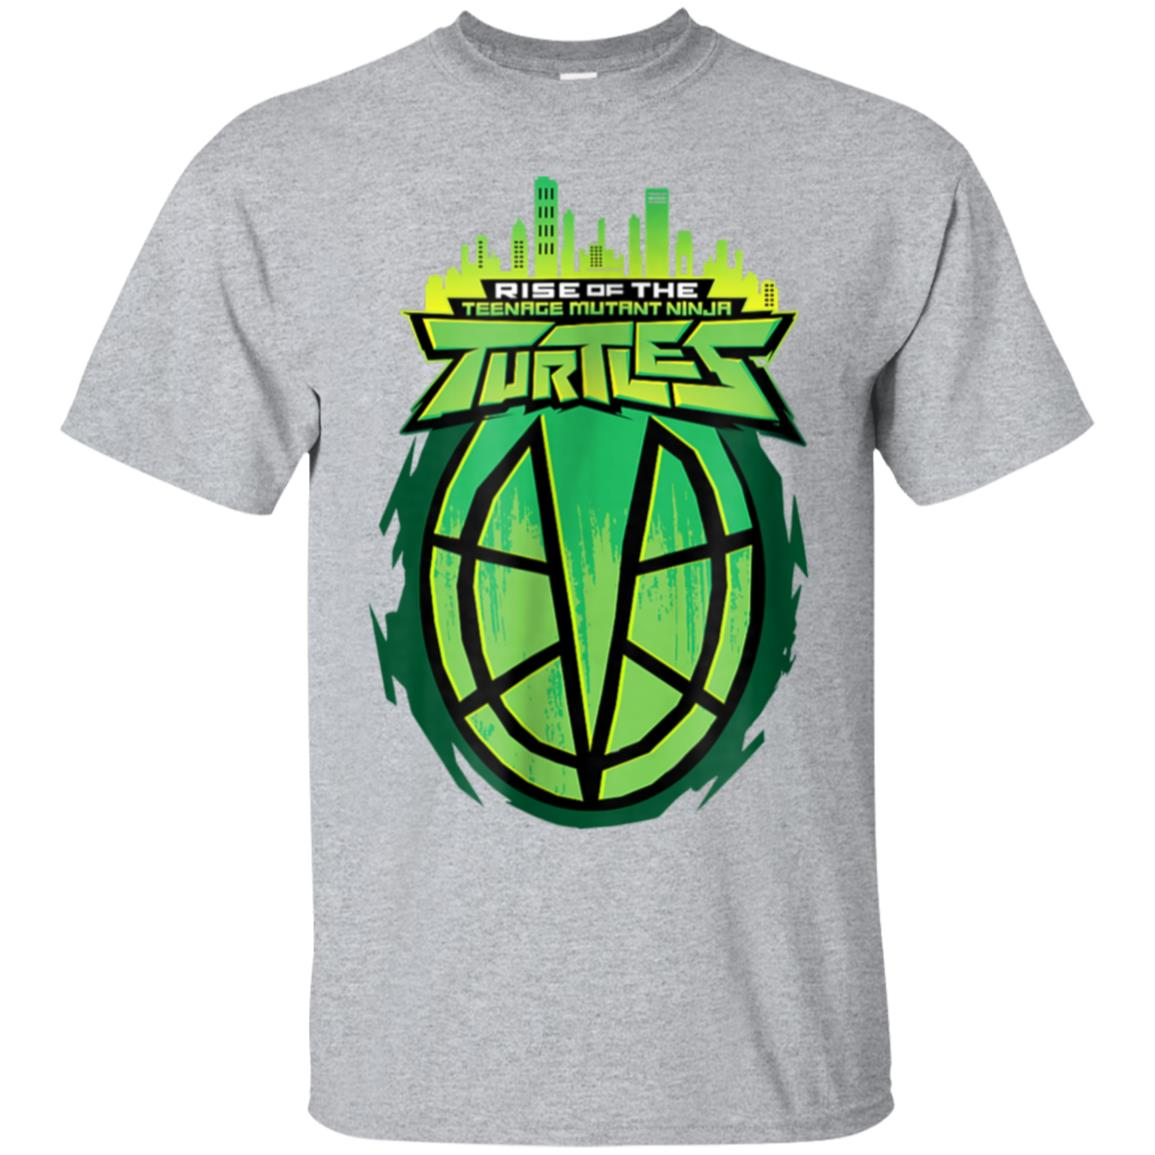 Nickelodeon Exclusive NYCC Rise of the TMNT T-Shirt 99promocode